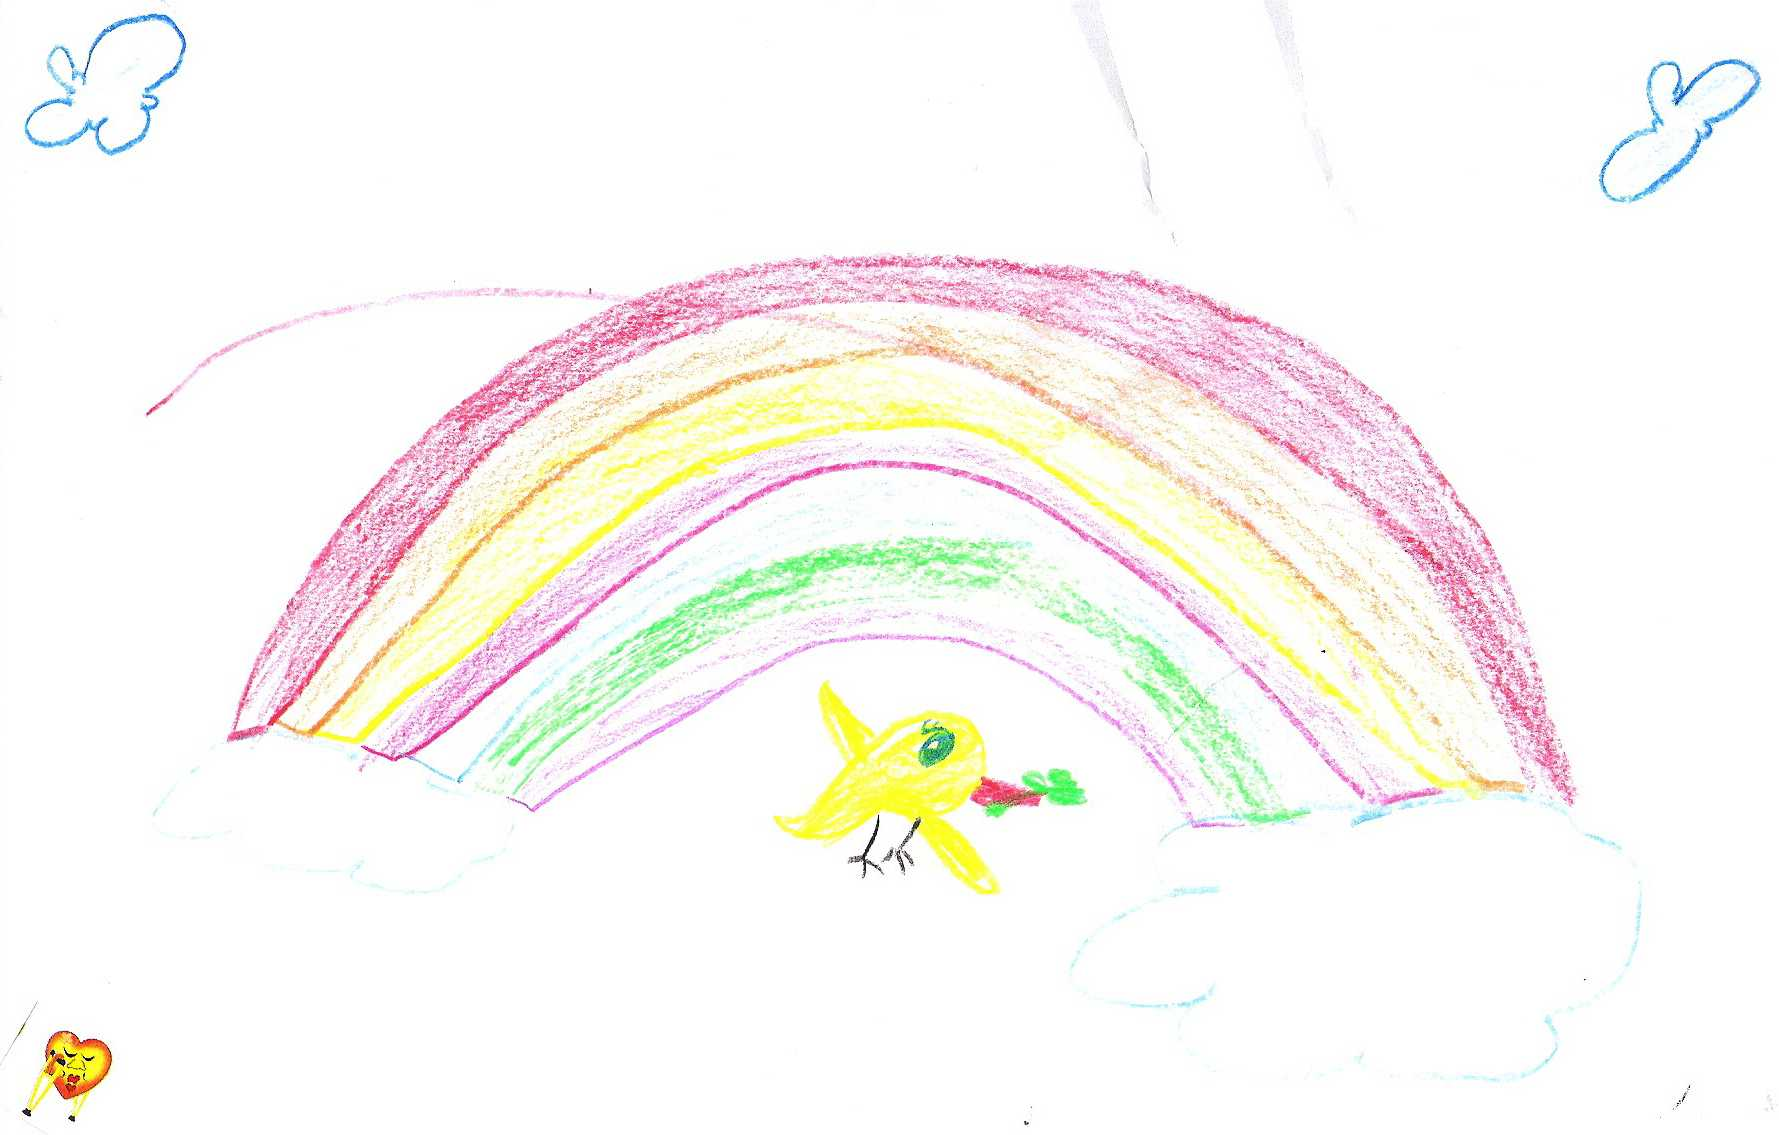 Noah's dove and the bright rainbow